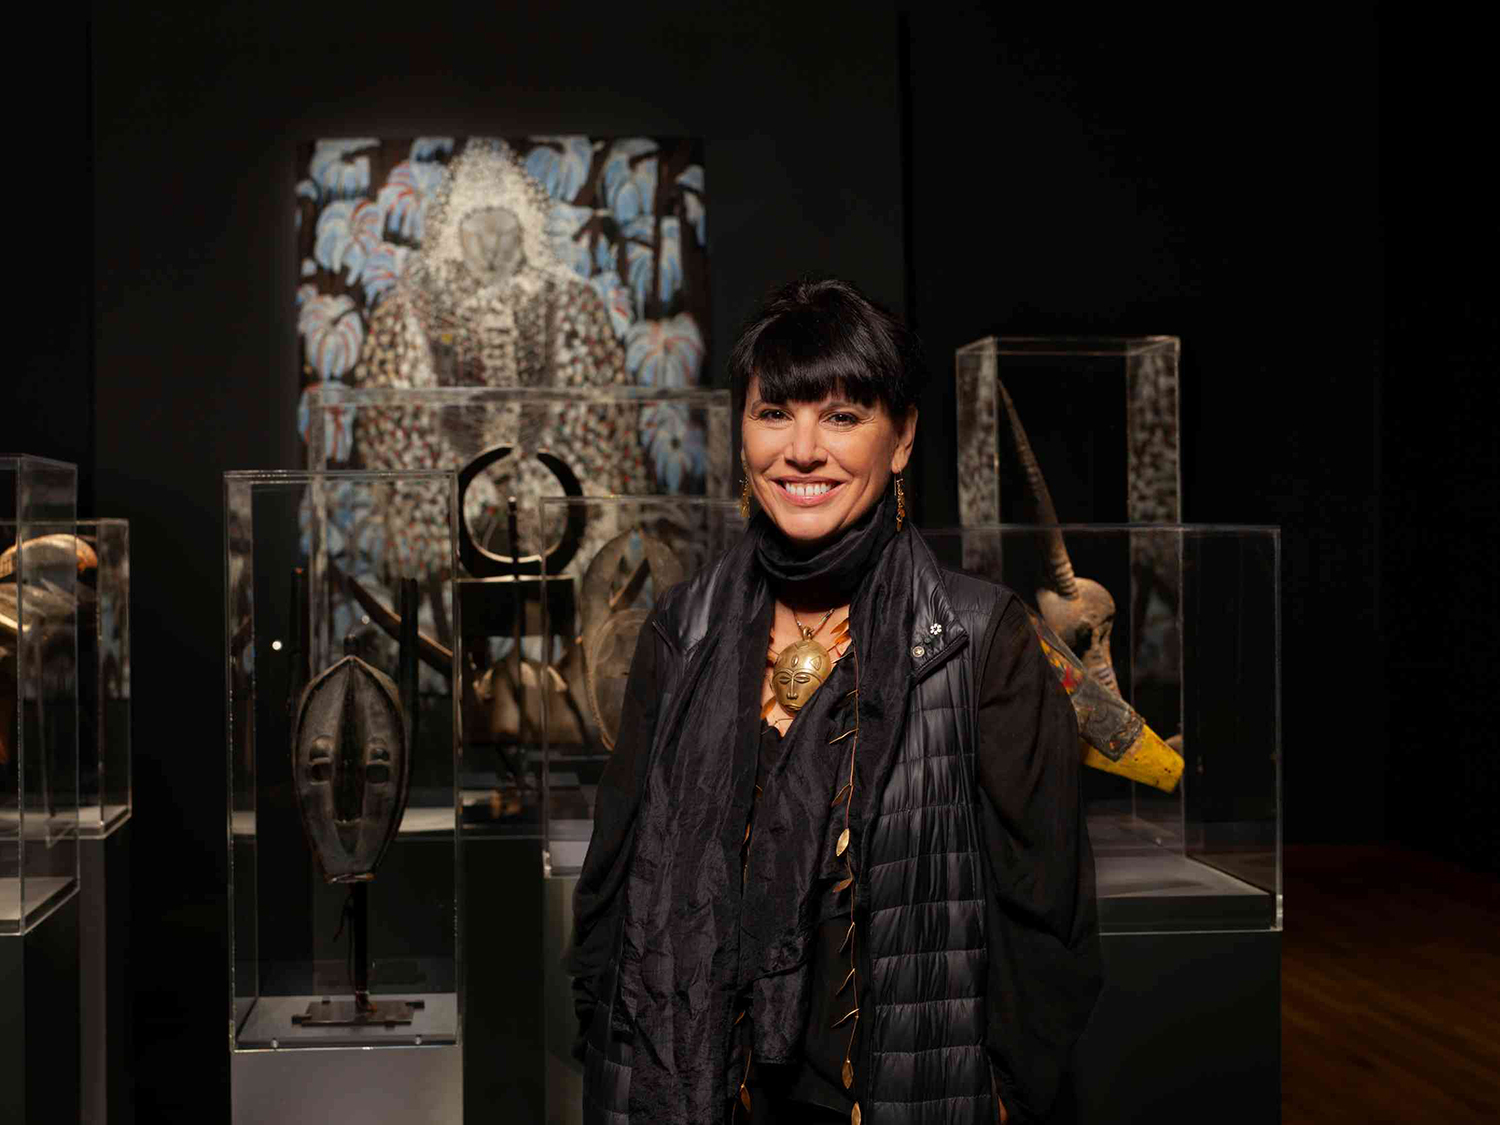 Montreal Museum of Fine Arts dismisses director over 'toxic' environment